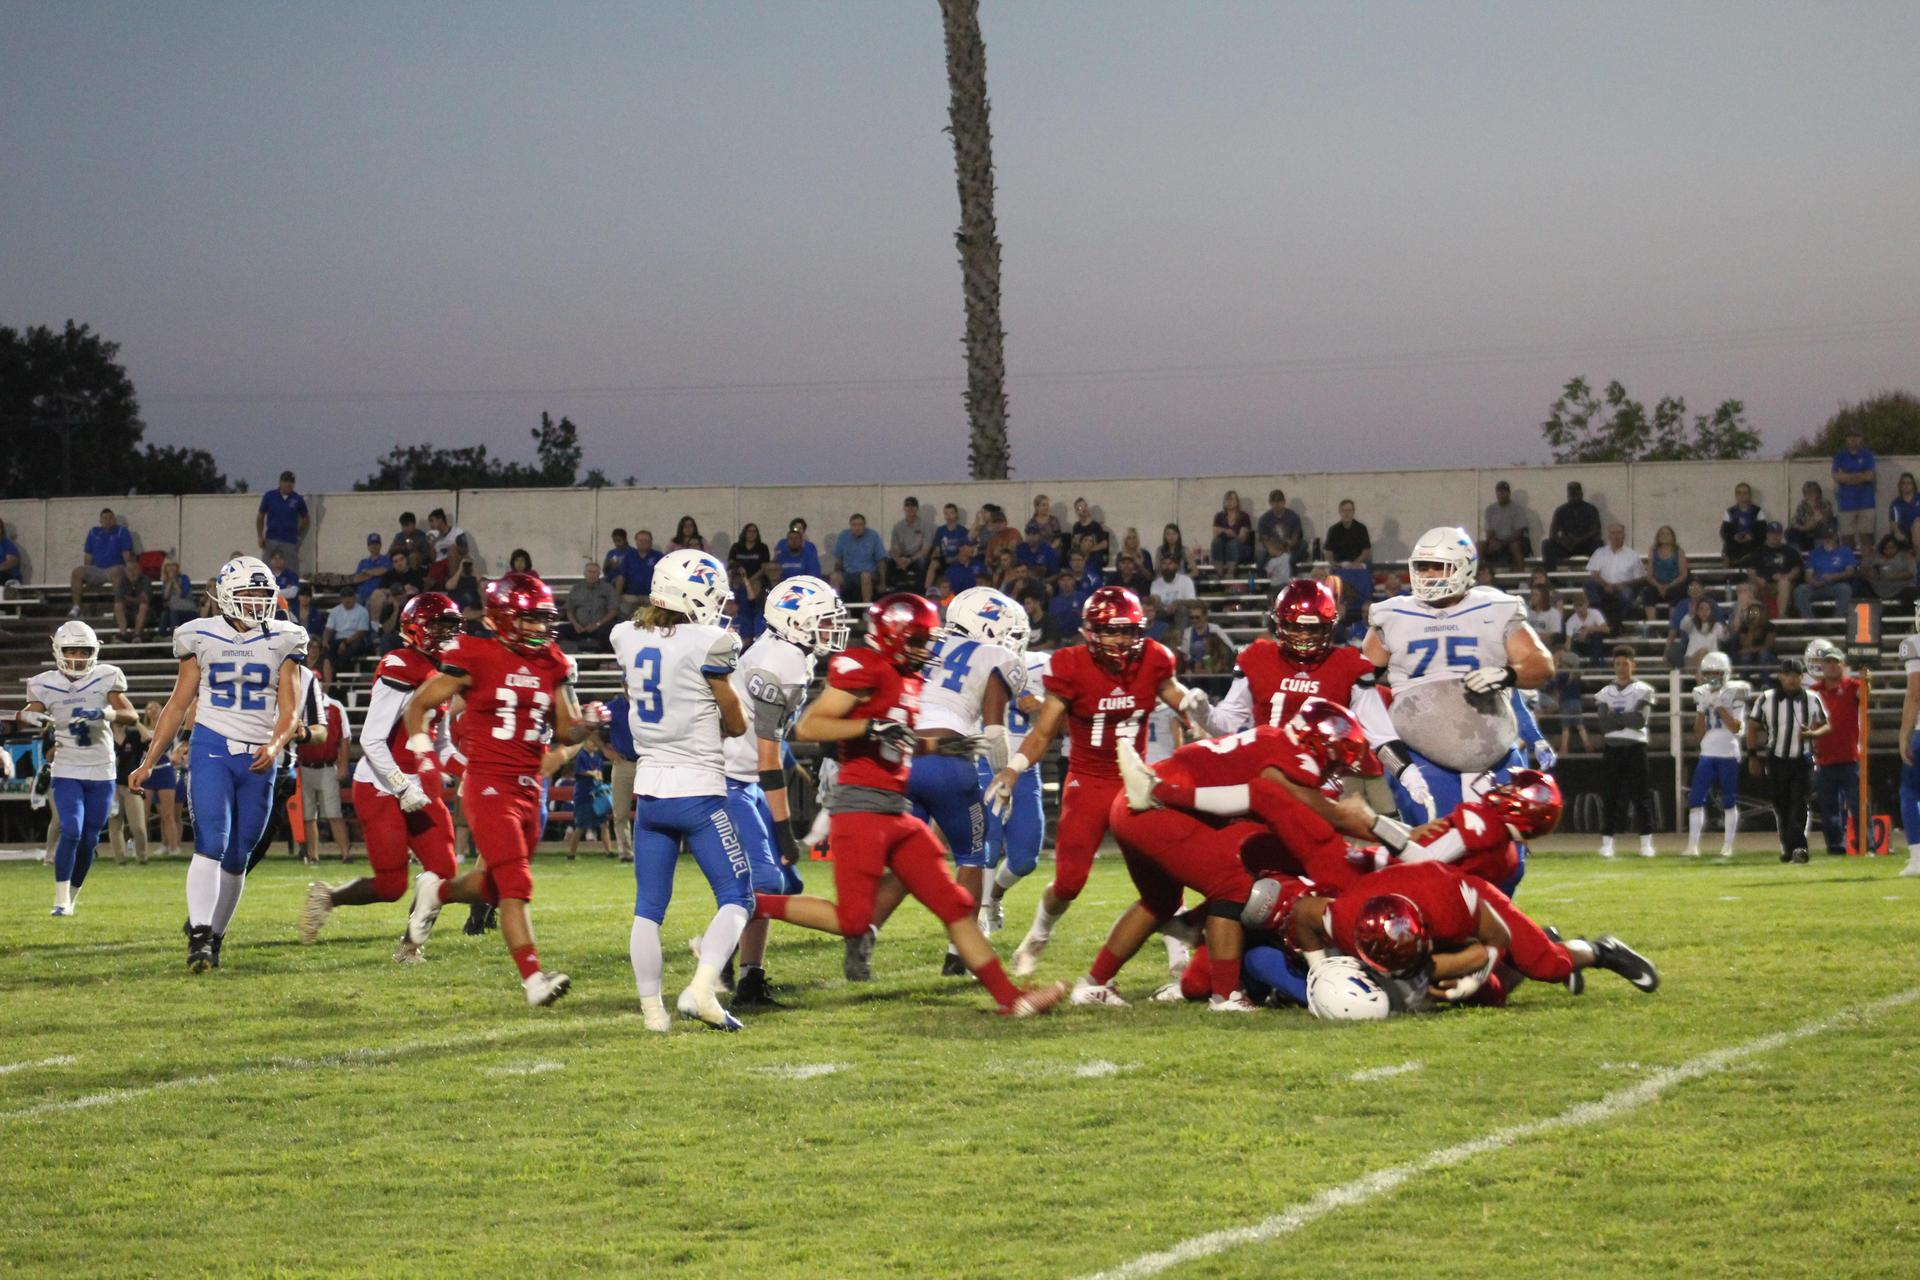 Varsity football players in action vs Immanuel